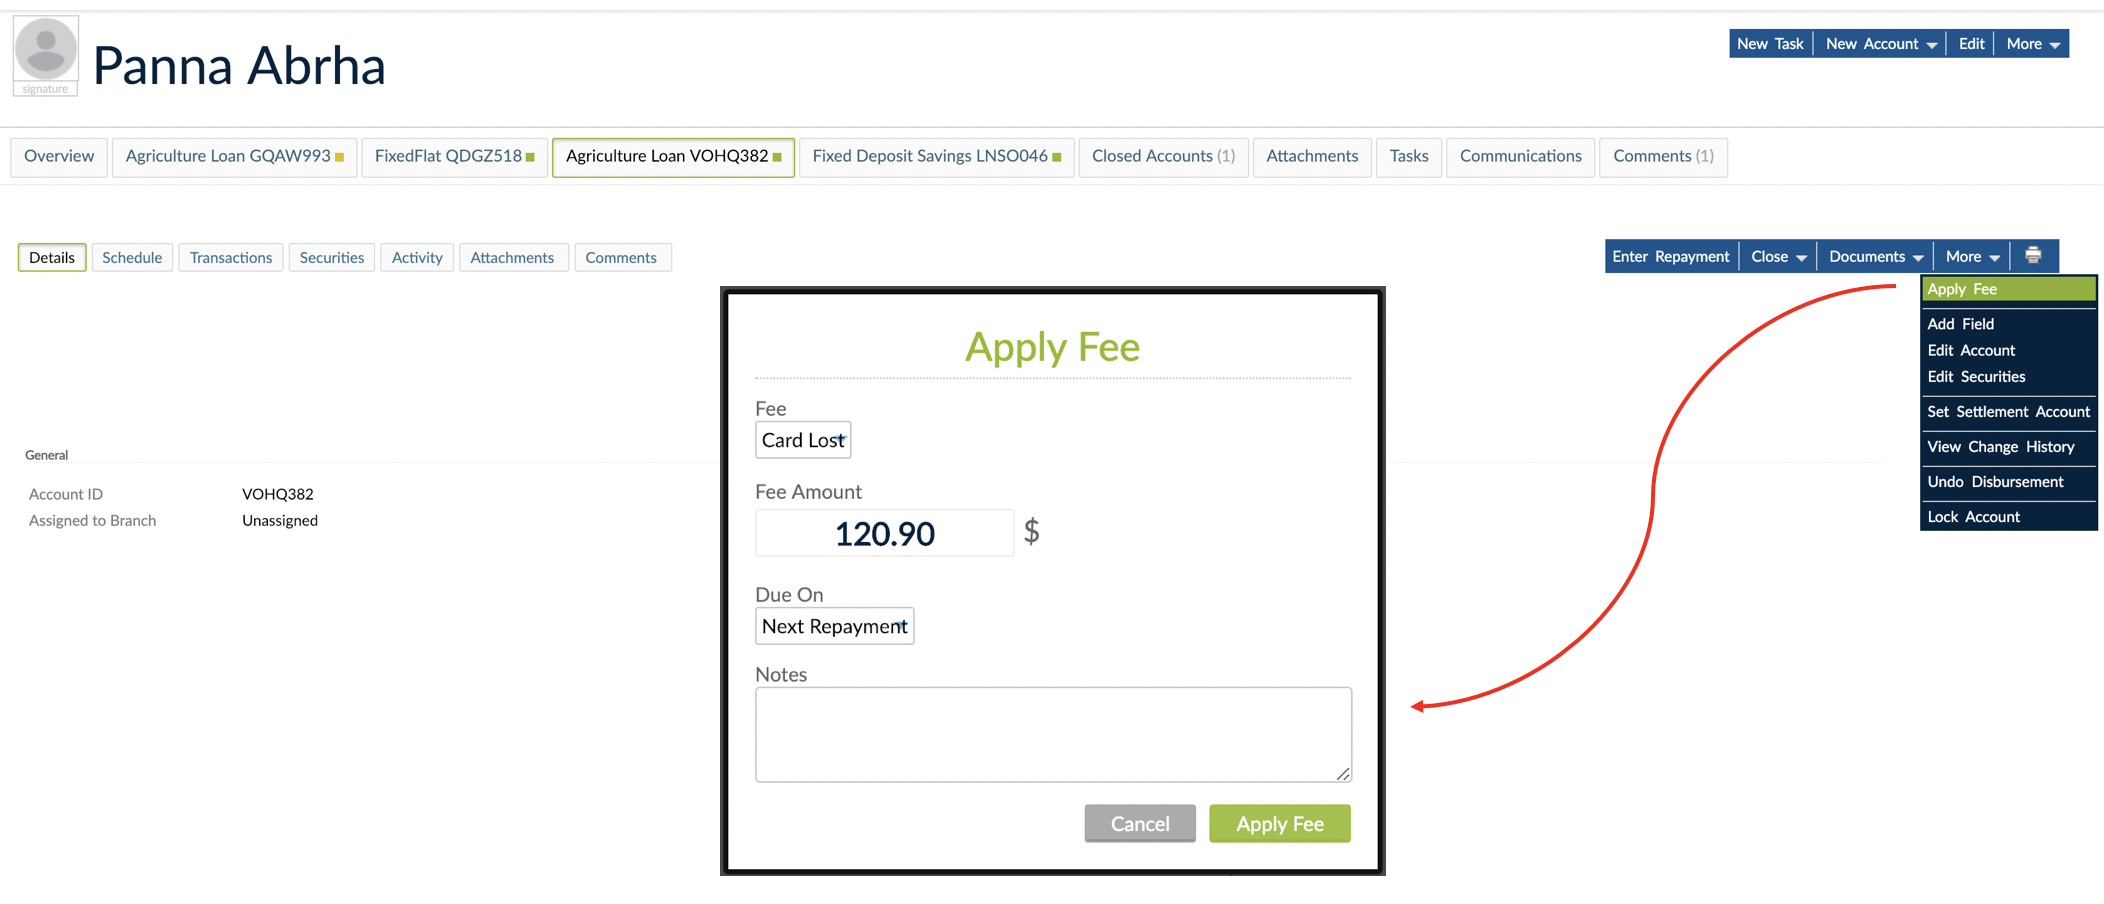 More dropdown with Apply Fee option and Apply fee pop-up.